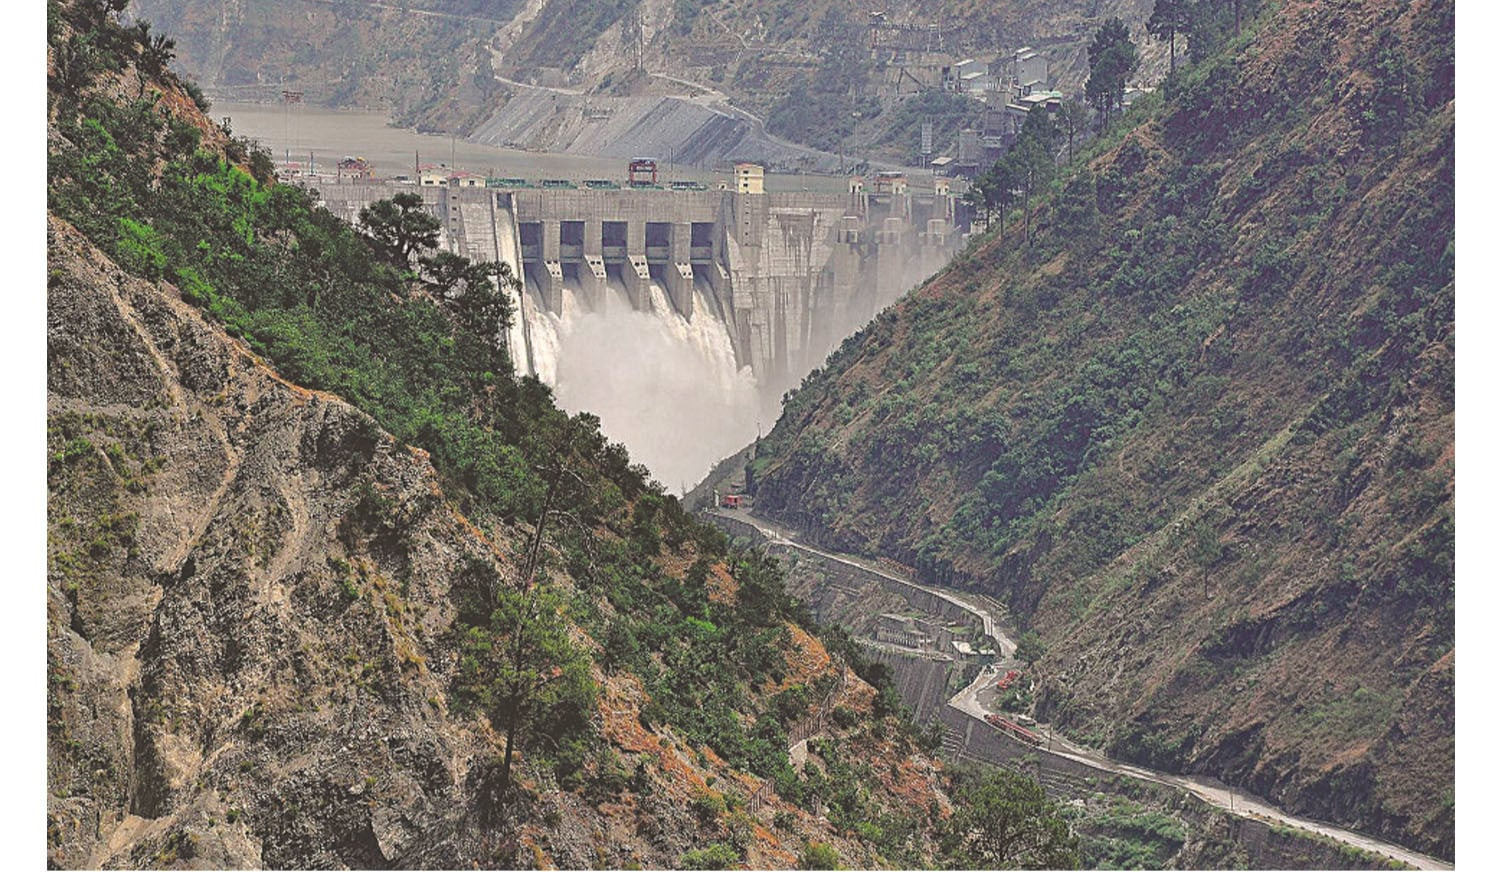 The Baglihar Dam is similar in design to India's design for the Kishanganga Project featuring low-level outlets. Photo courtesy ICIMOD